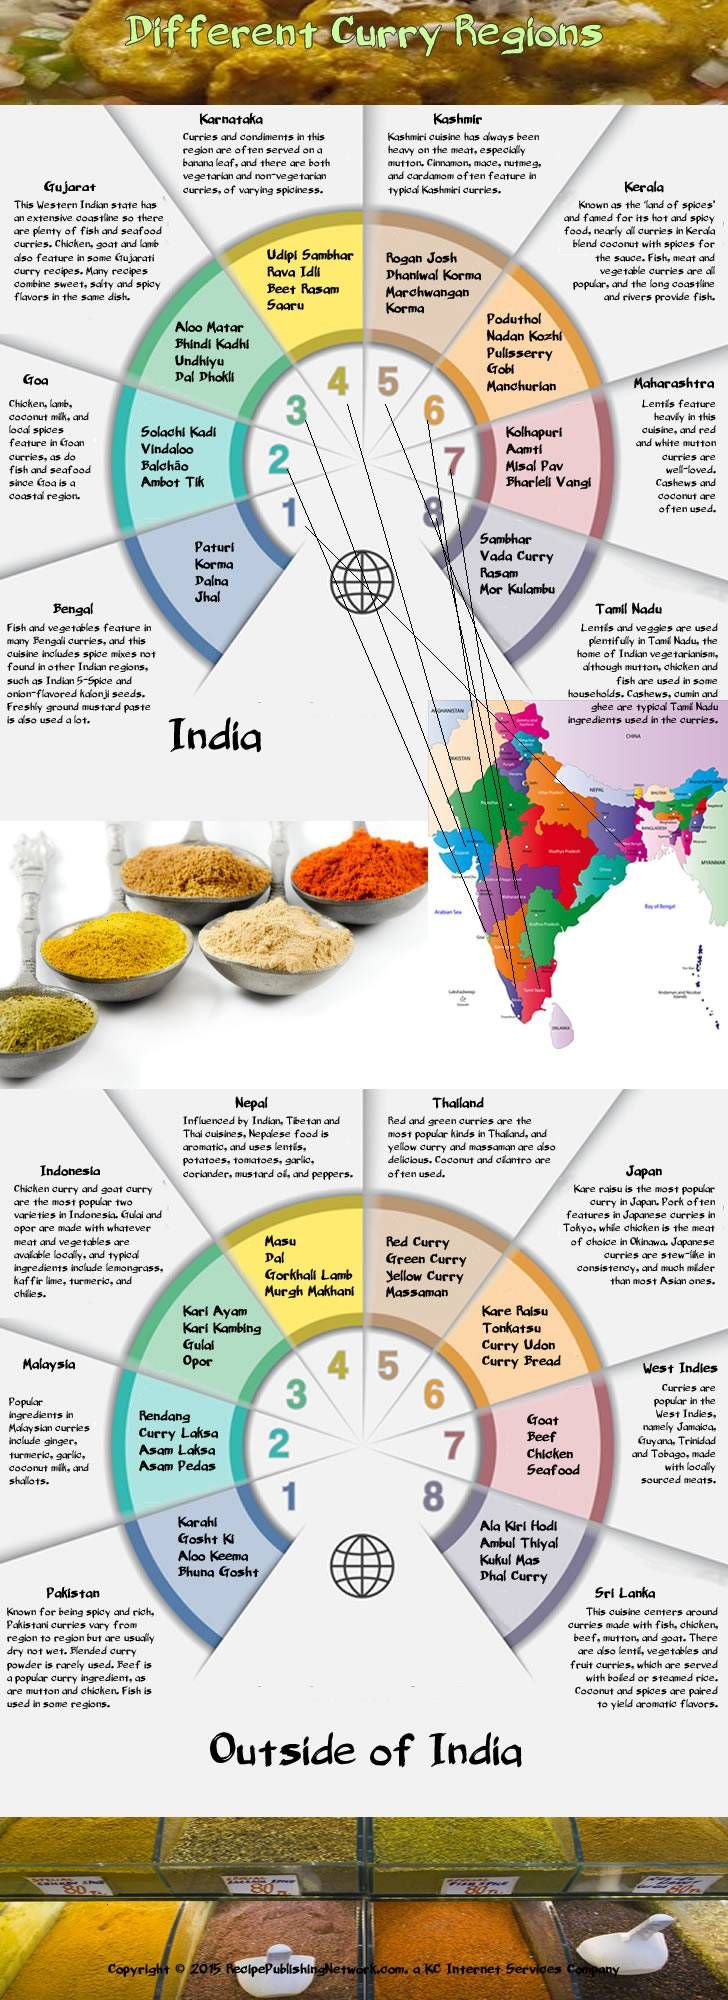 39 best India images on Pinterest | Info graphics, Infographic and ...